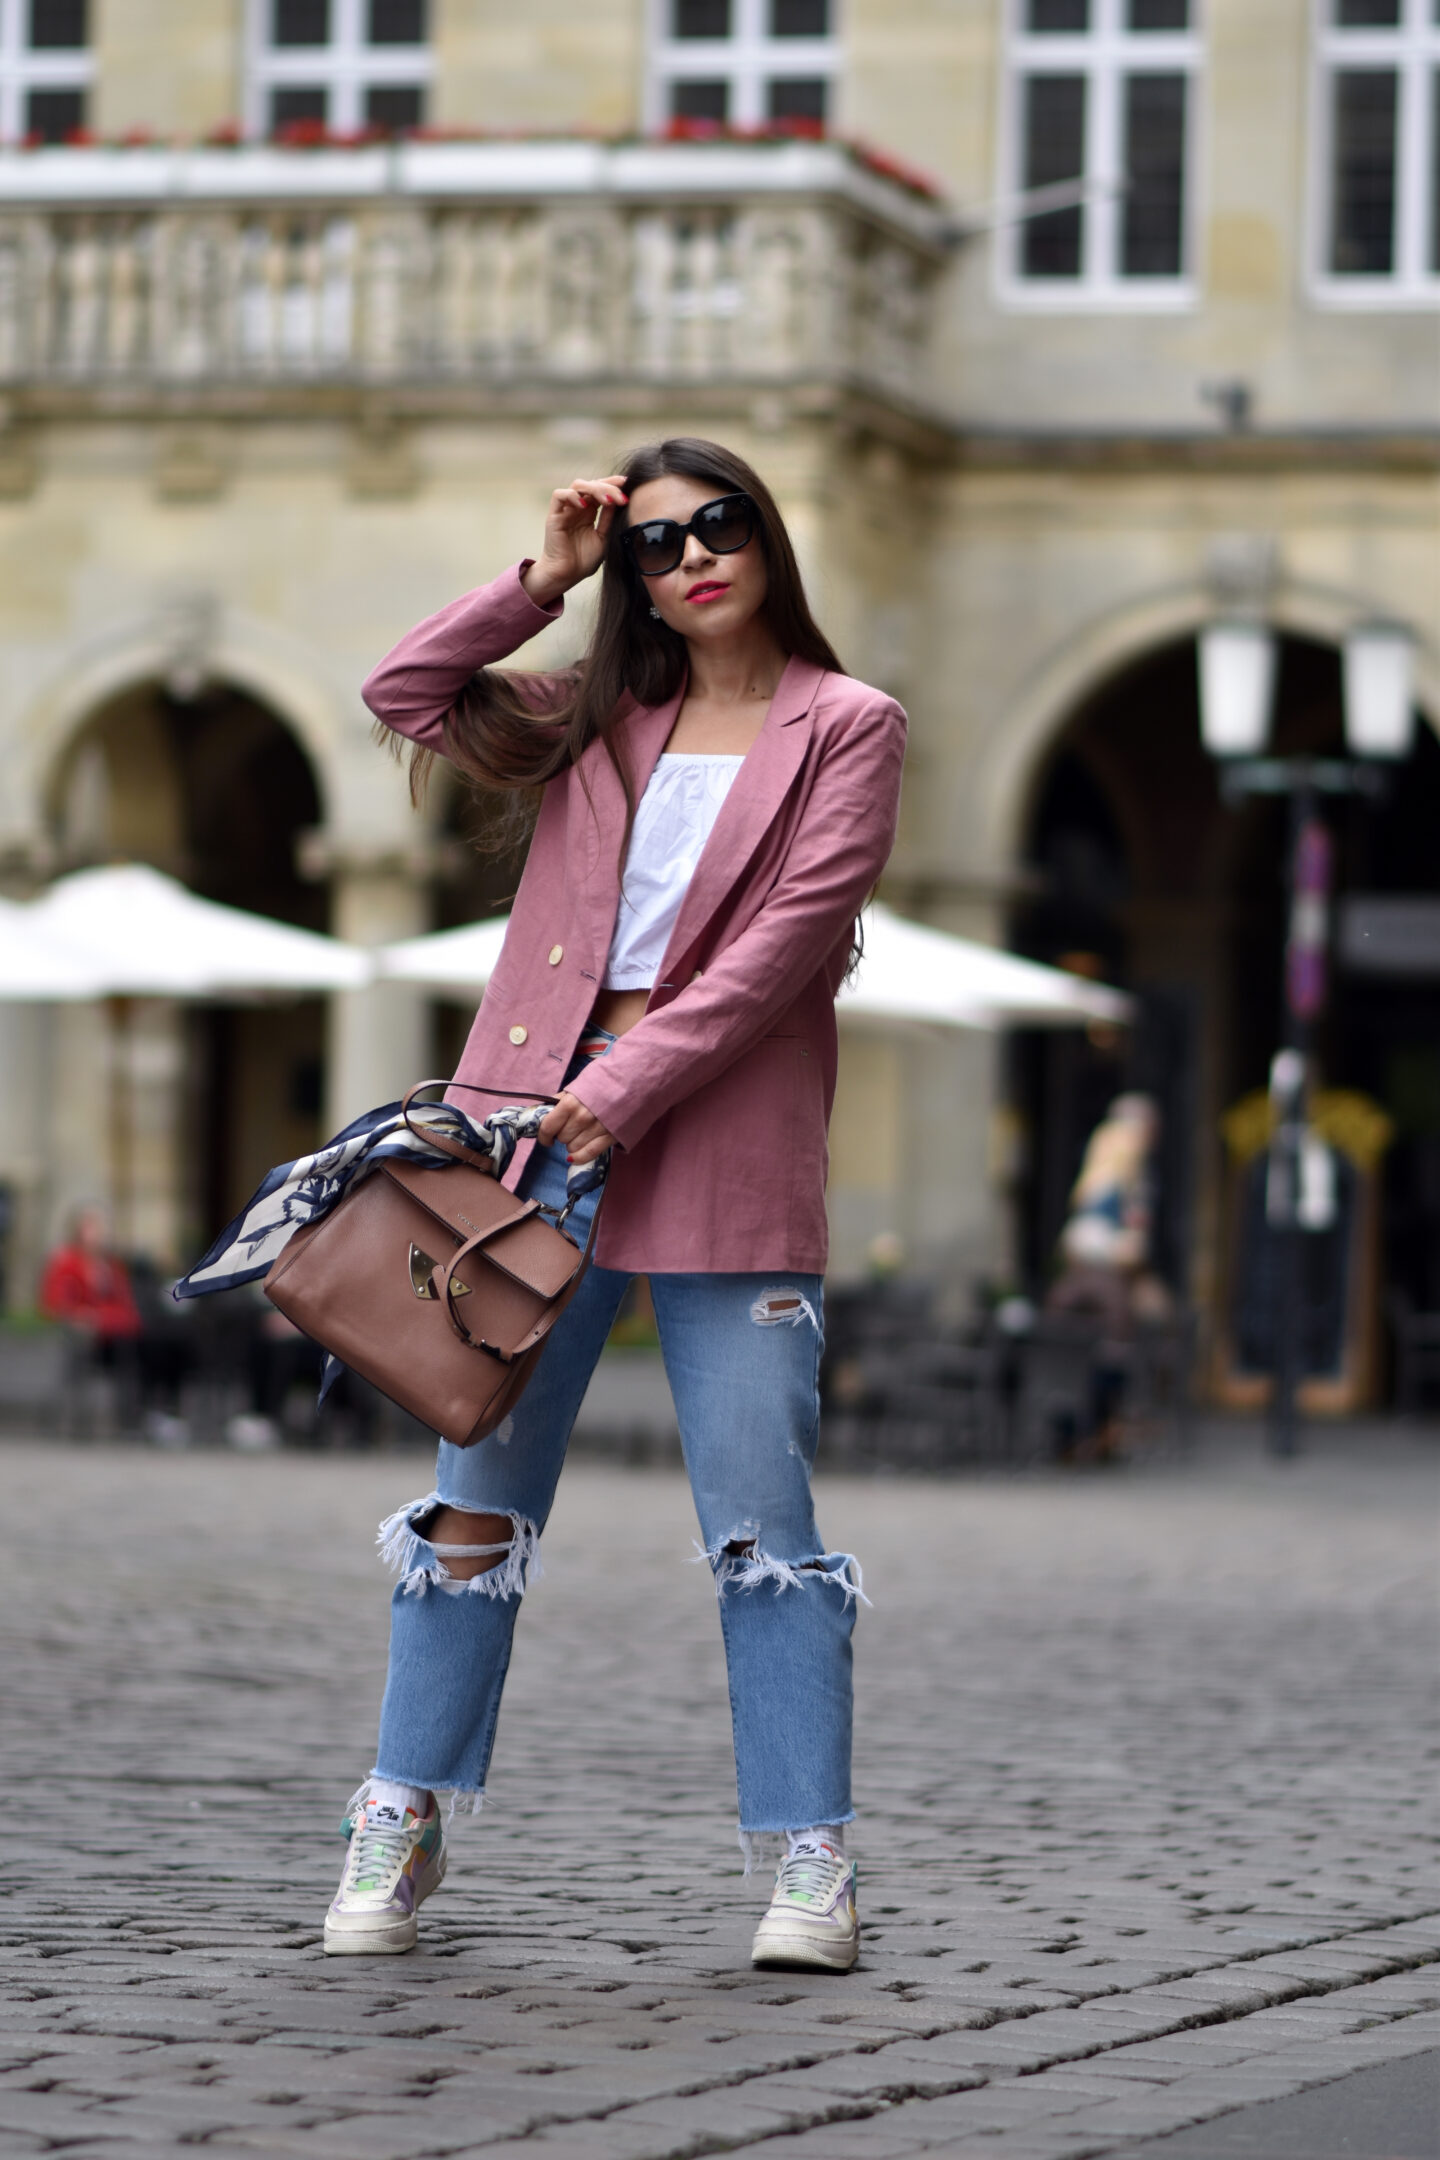 Nike Air Force 1 Shadow im Streetstyle mit rosa Blazer & Boyfriend Jeans